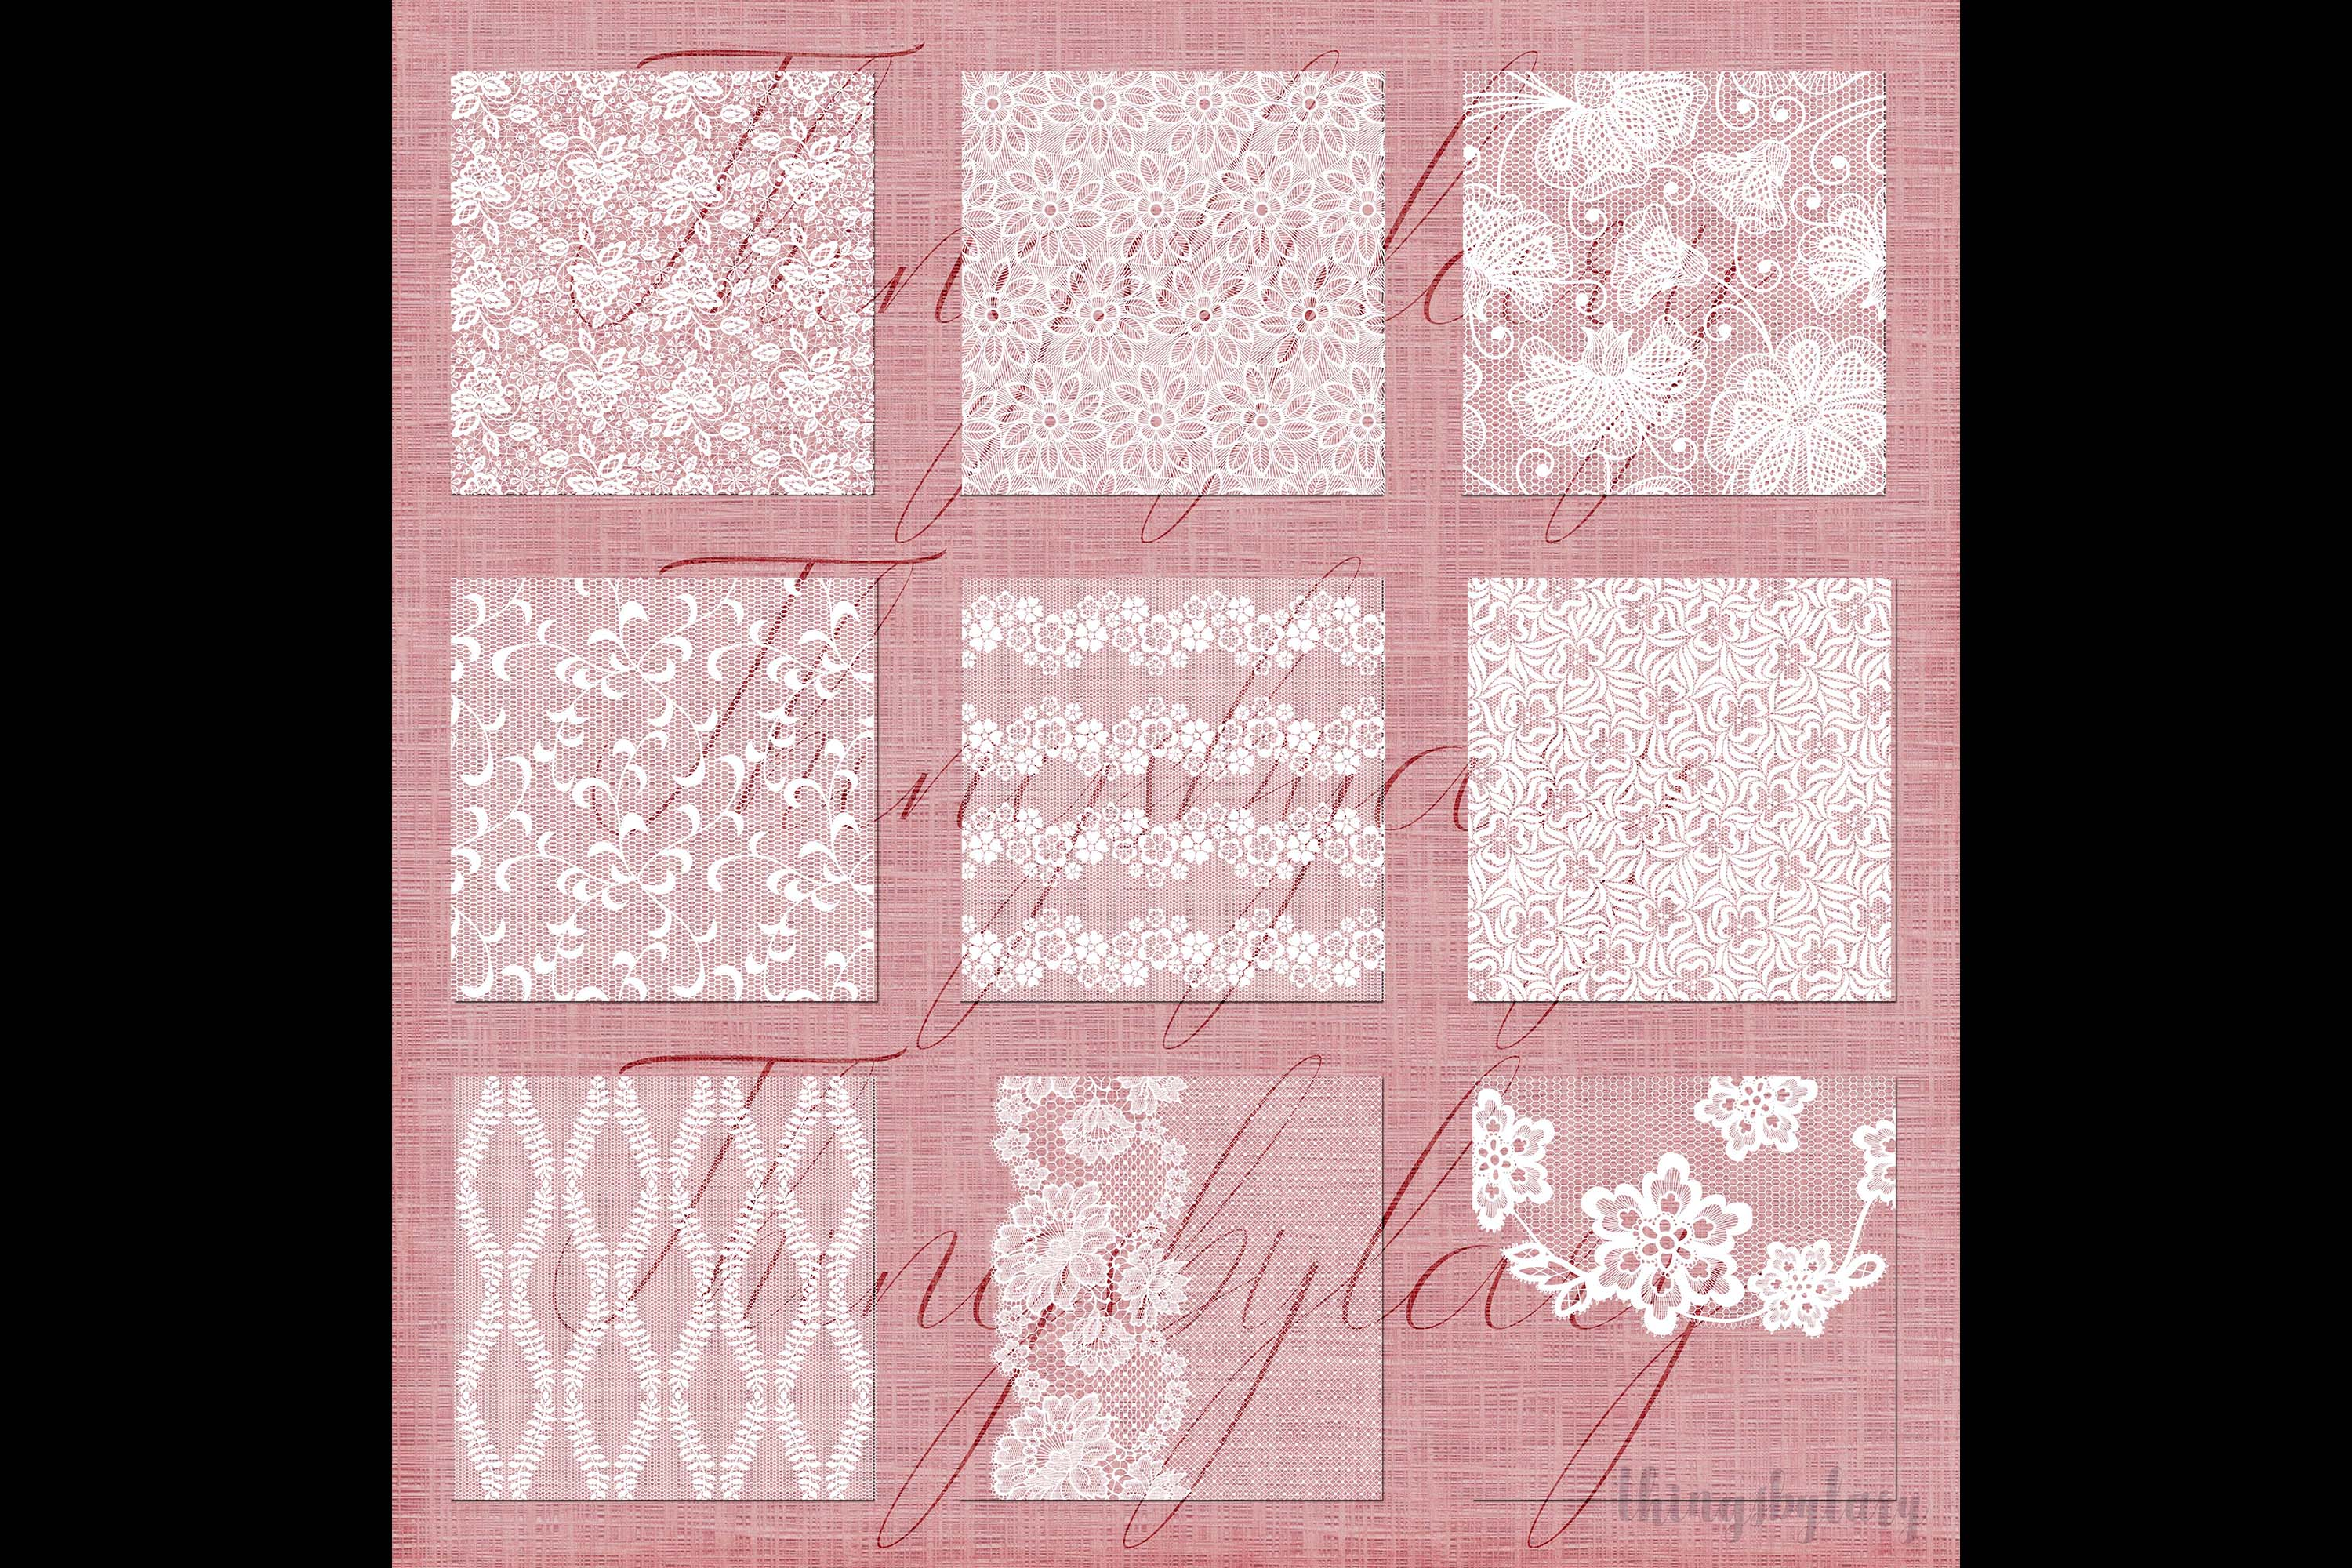 27 White Lace Border Frame Overlay Transparent Images PNG example image 9